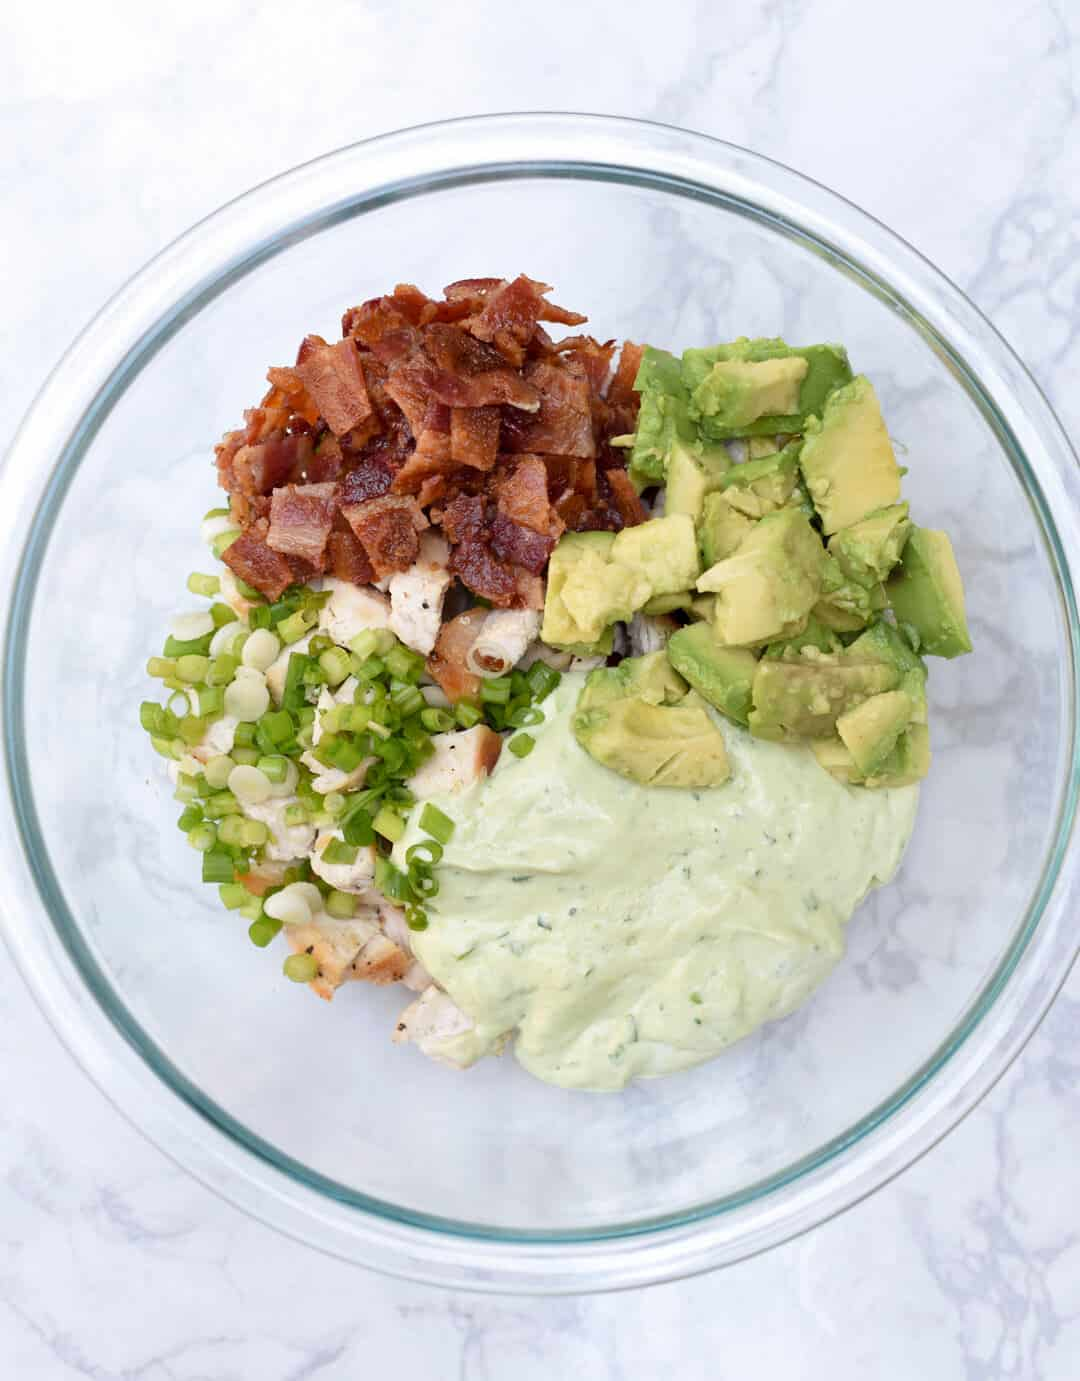 A fresh and creamy avocado based dressing combines with chicken and crisp bacon to create these Avocado Bacon Chicken Salad Sandwiches.